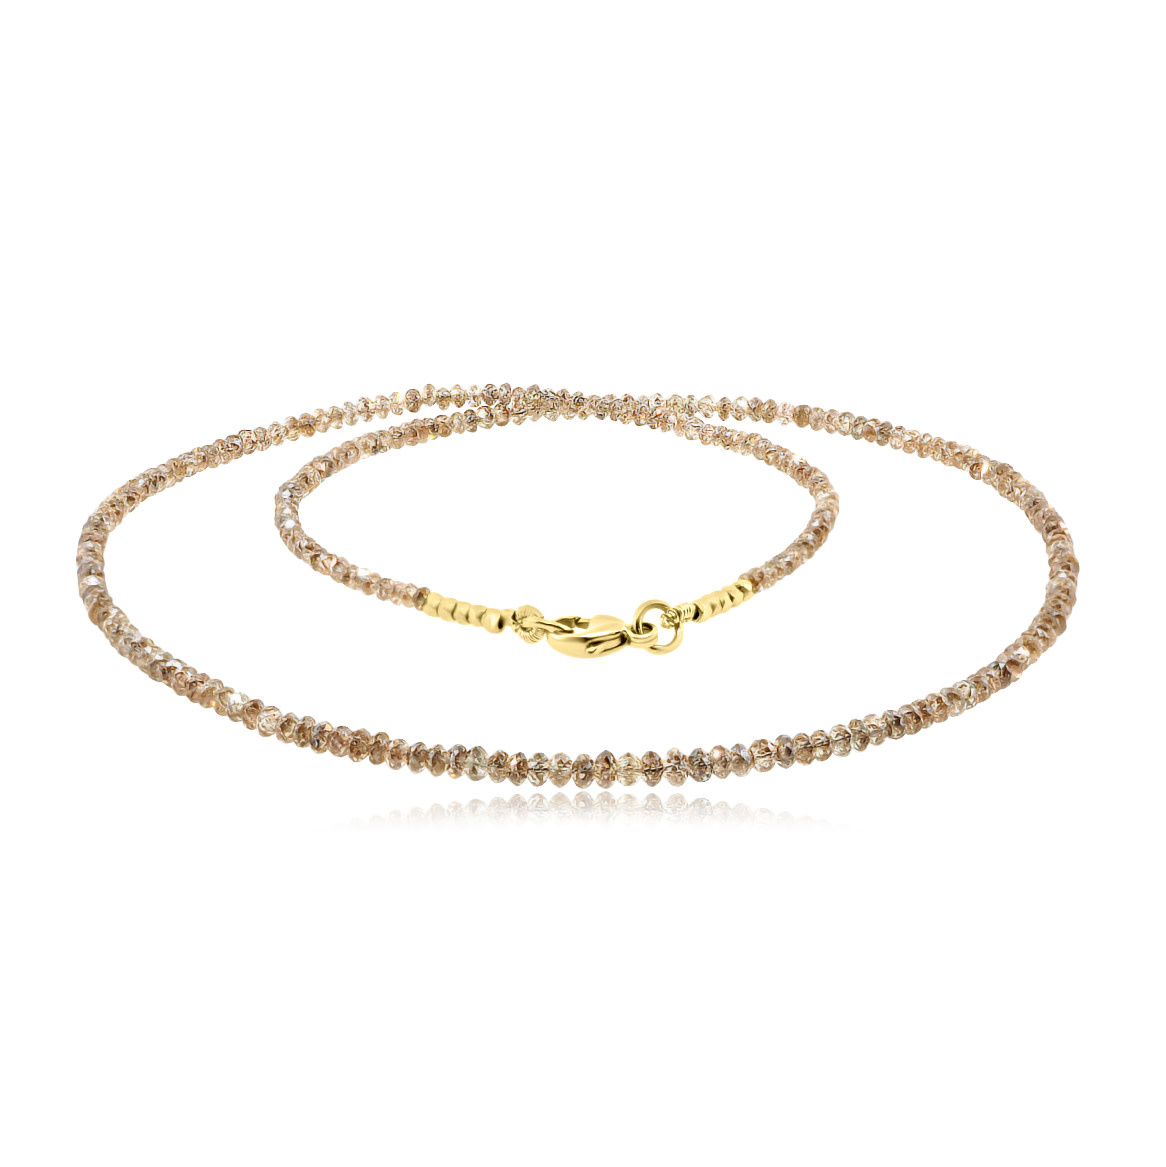 Trabert Goldsmiths 19.60cts Champagne Diamond Beaded Necklace